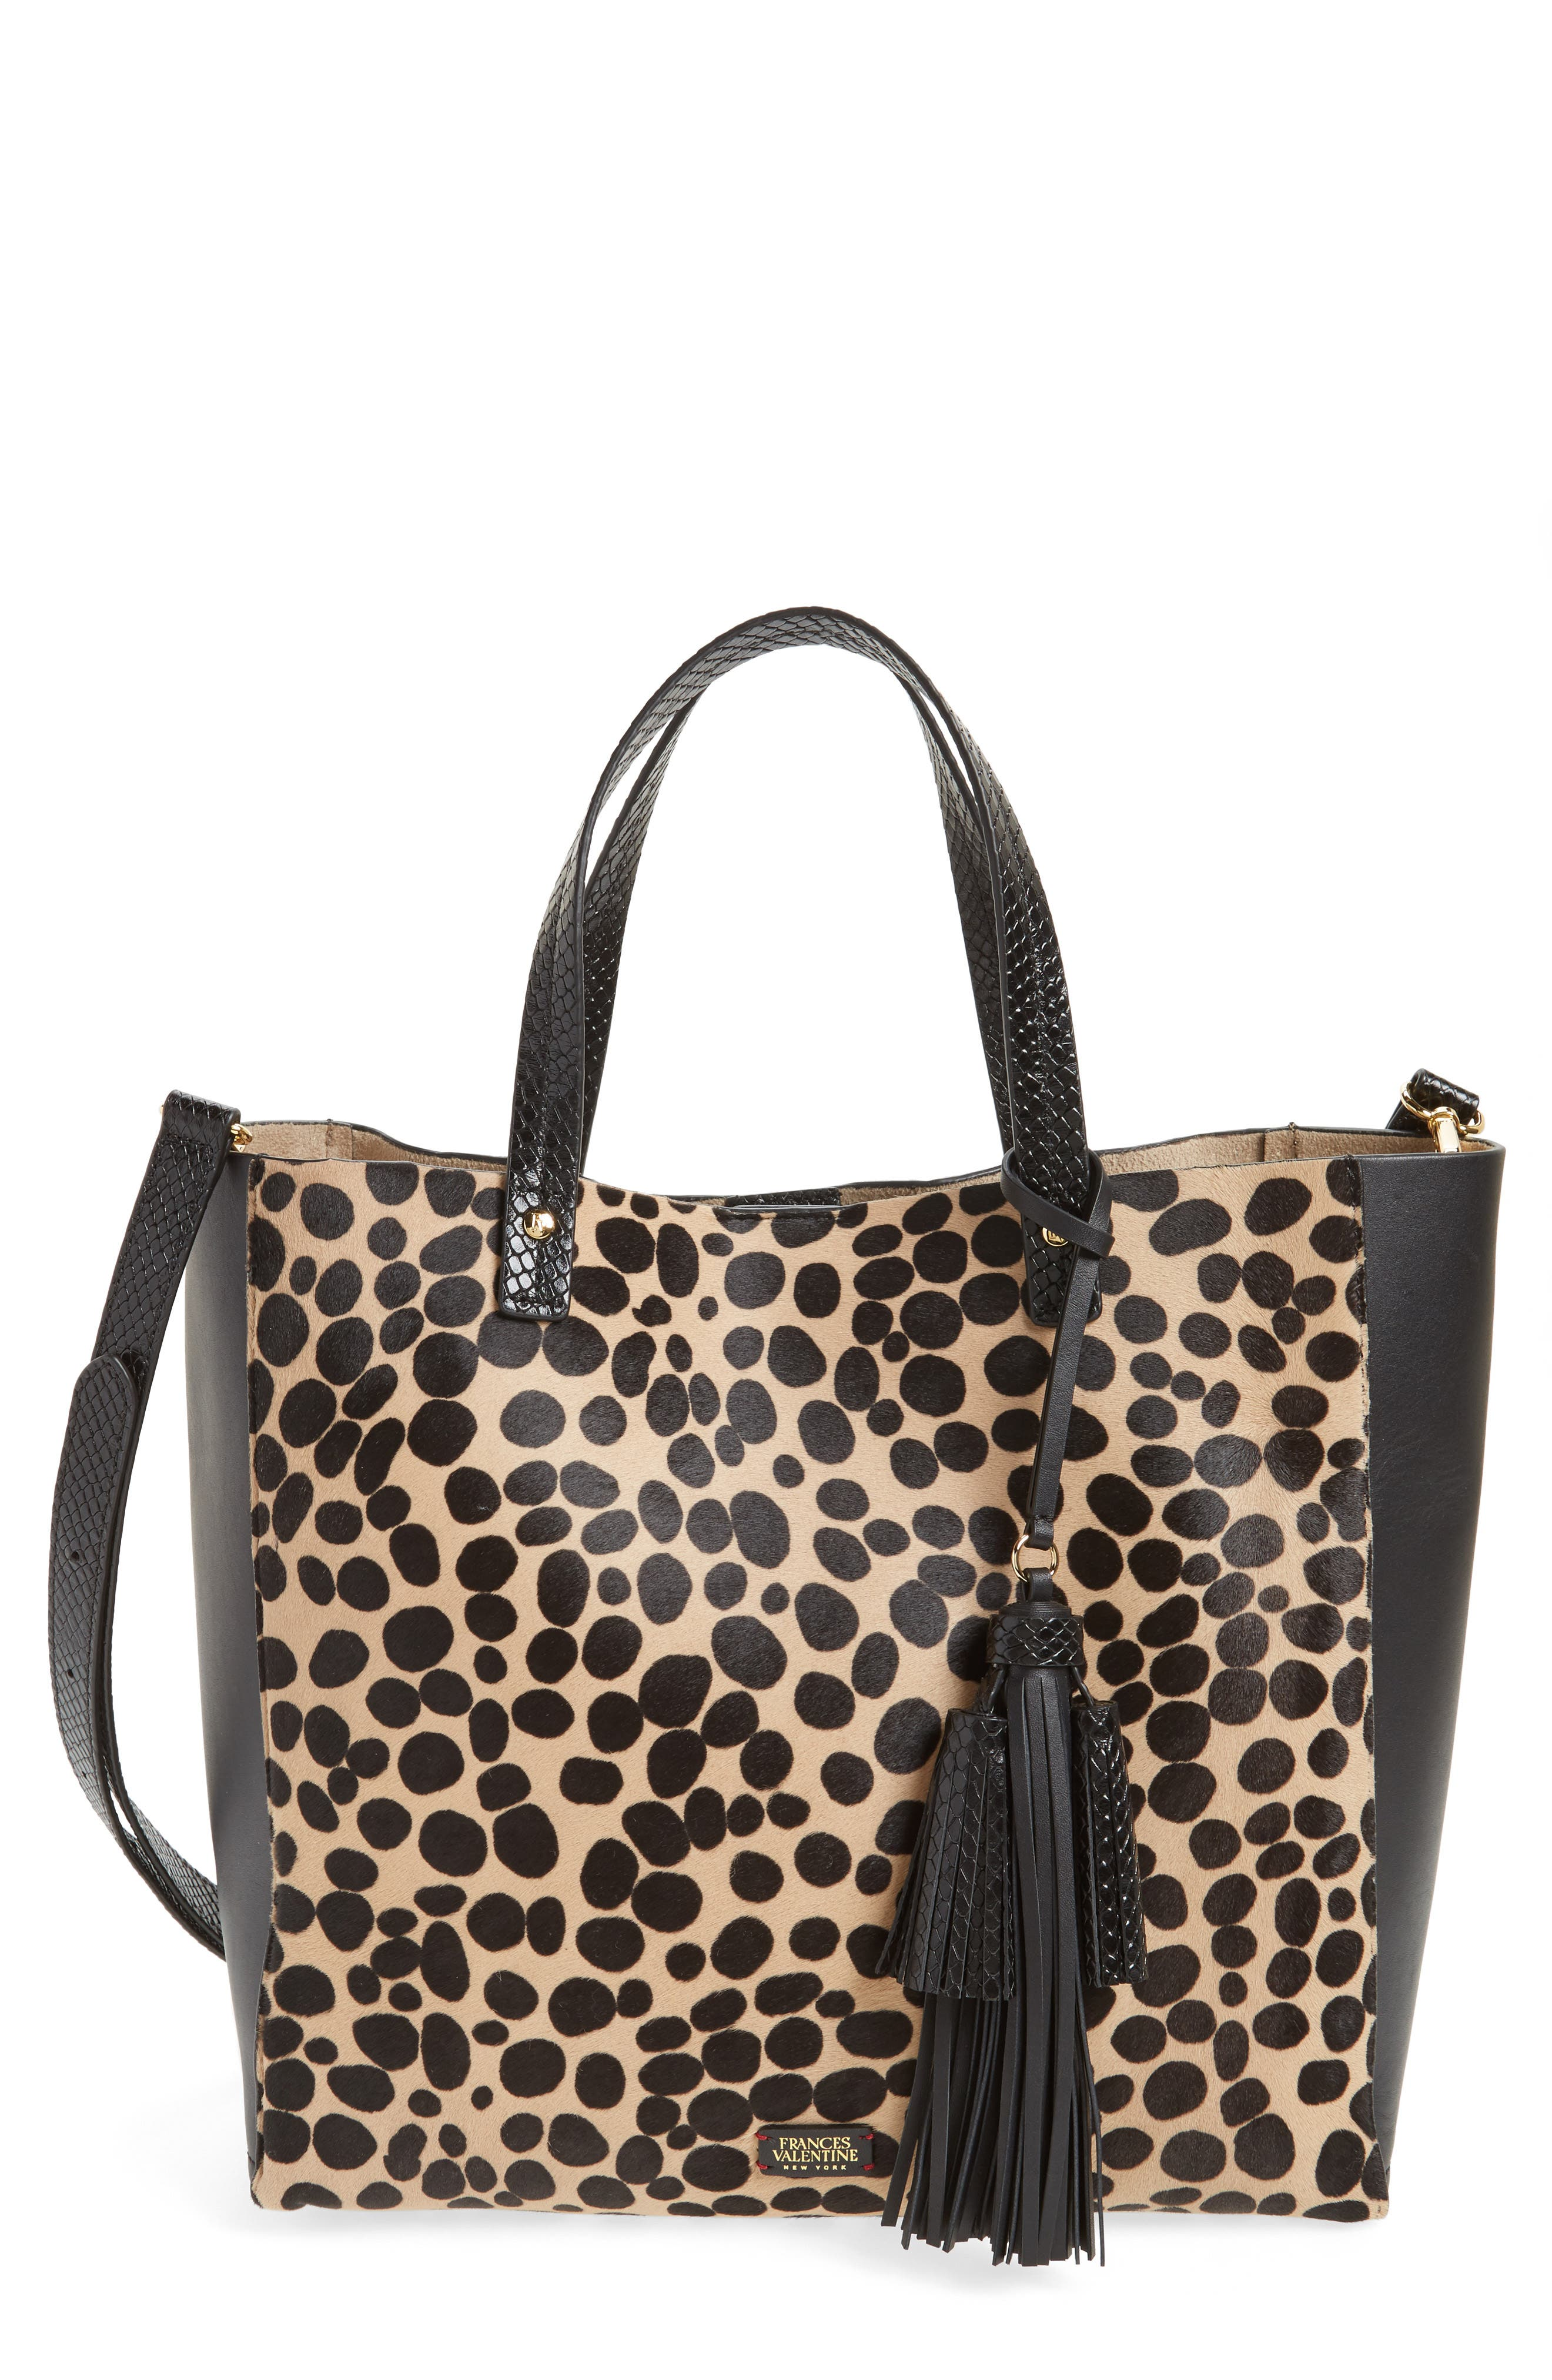 Main Image - Frances Valentine Genuine Calf Hair & Leather Convertible Tote